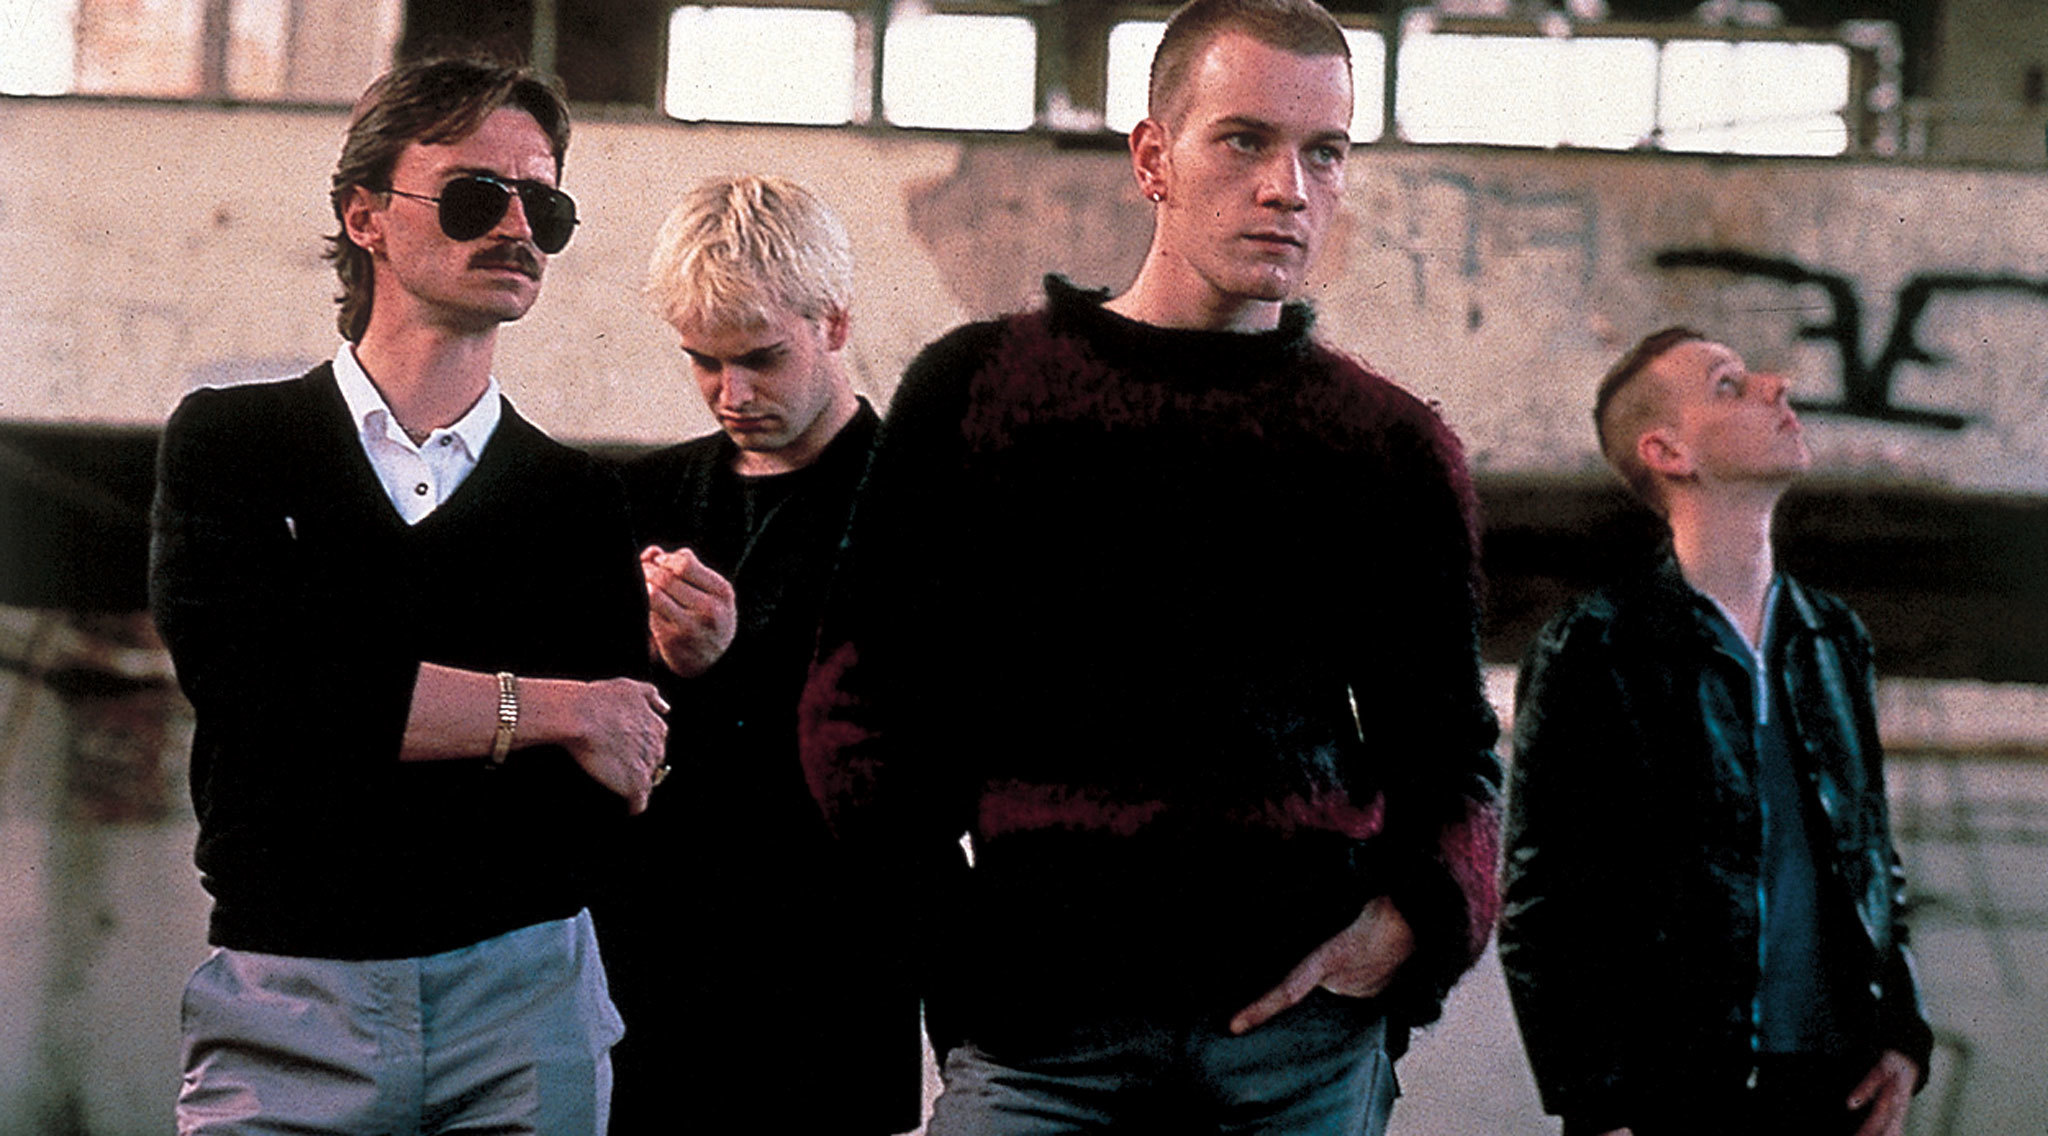 Four questions with the four original stars of Trainspotting